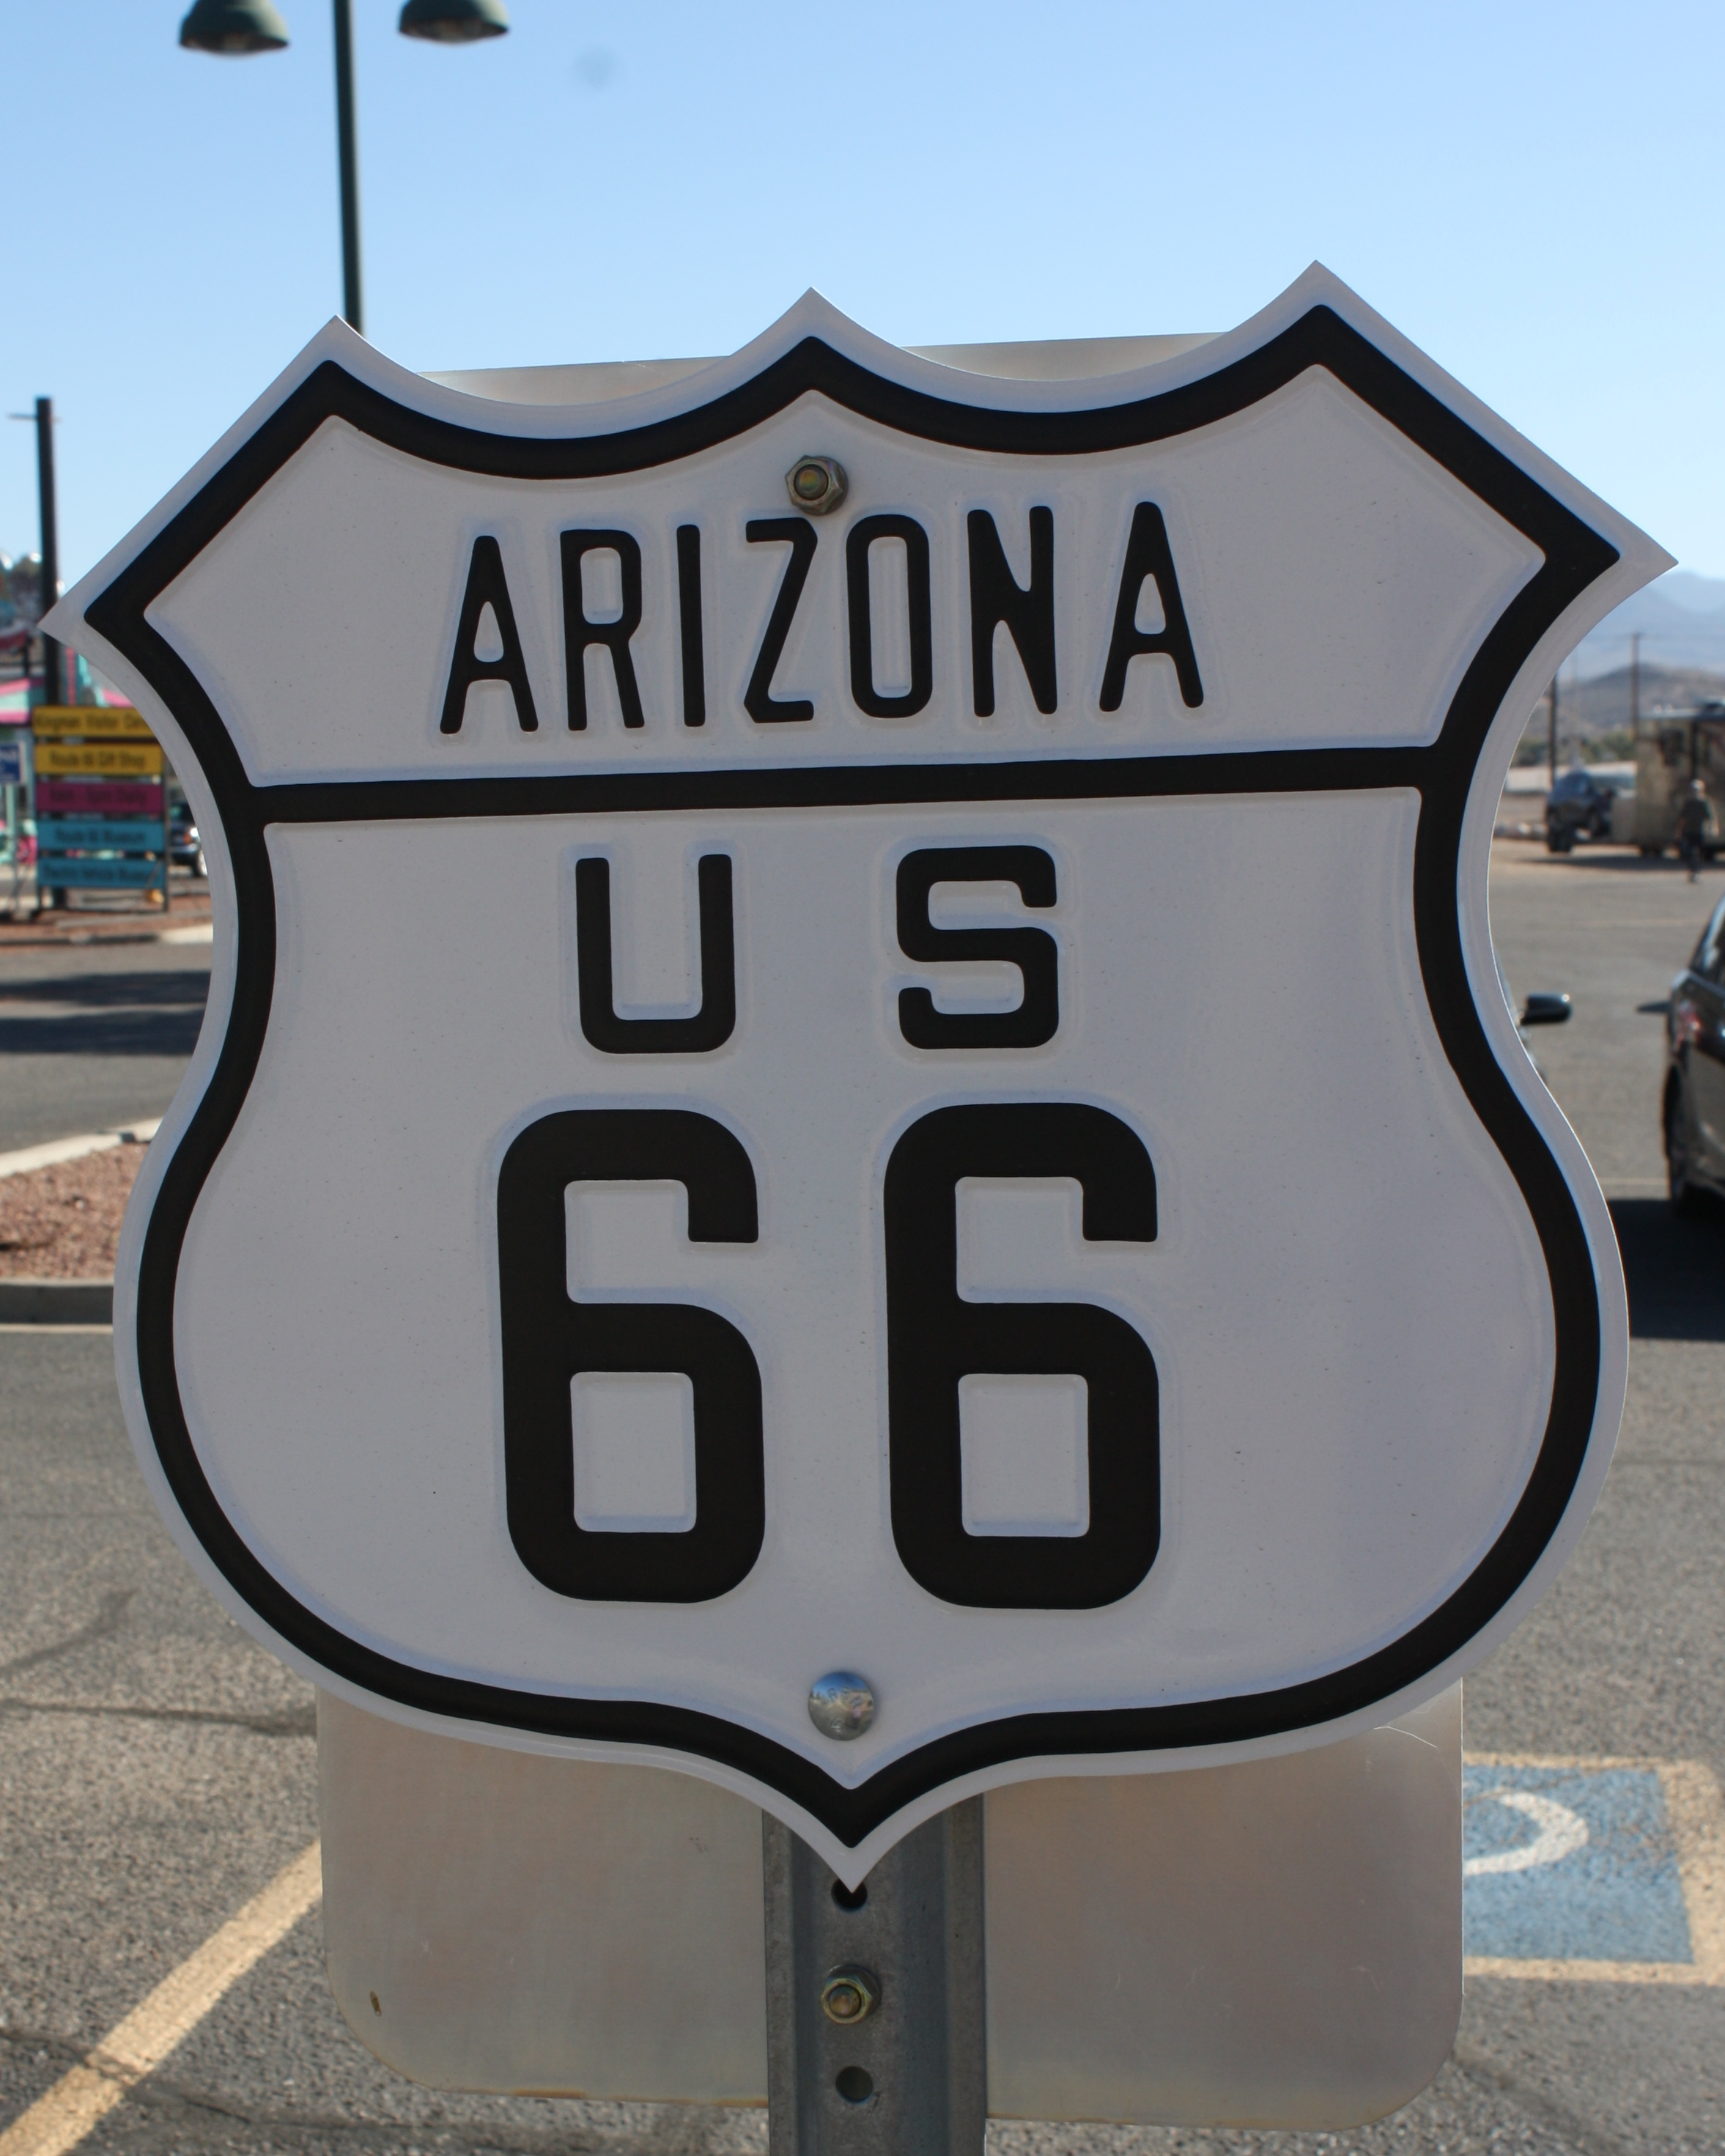 route 66 day; the history and nostalgia of arizona's stretch of the